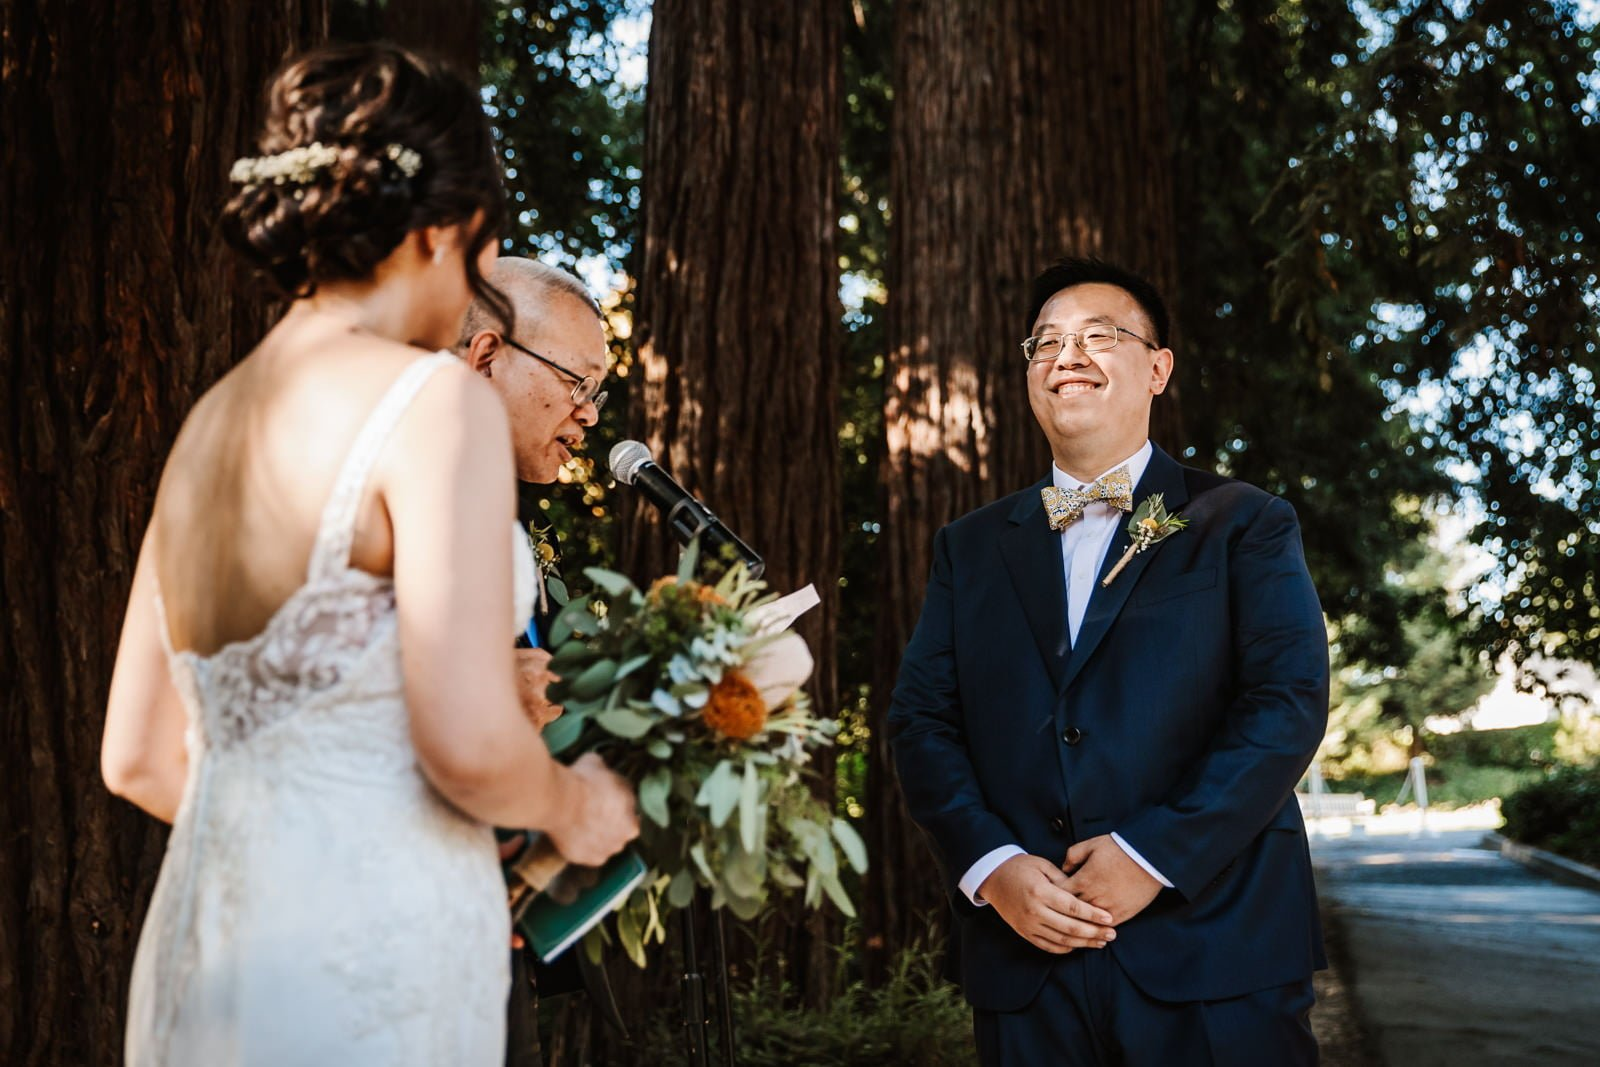 Groom smiling during the ceremony